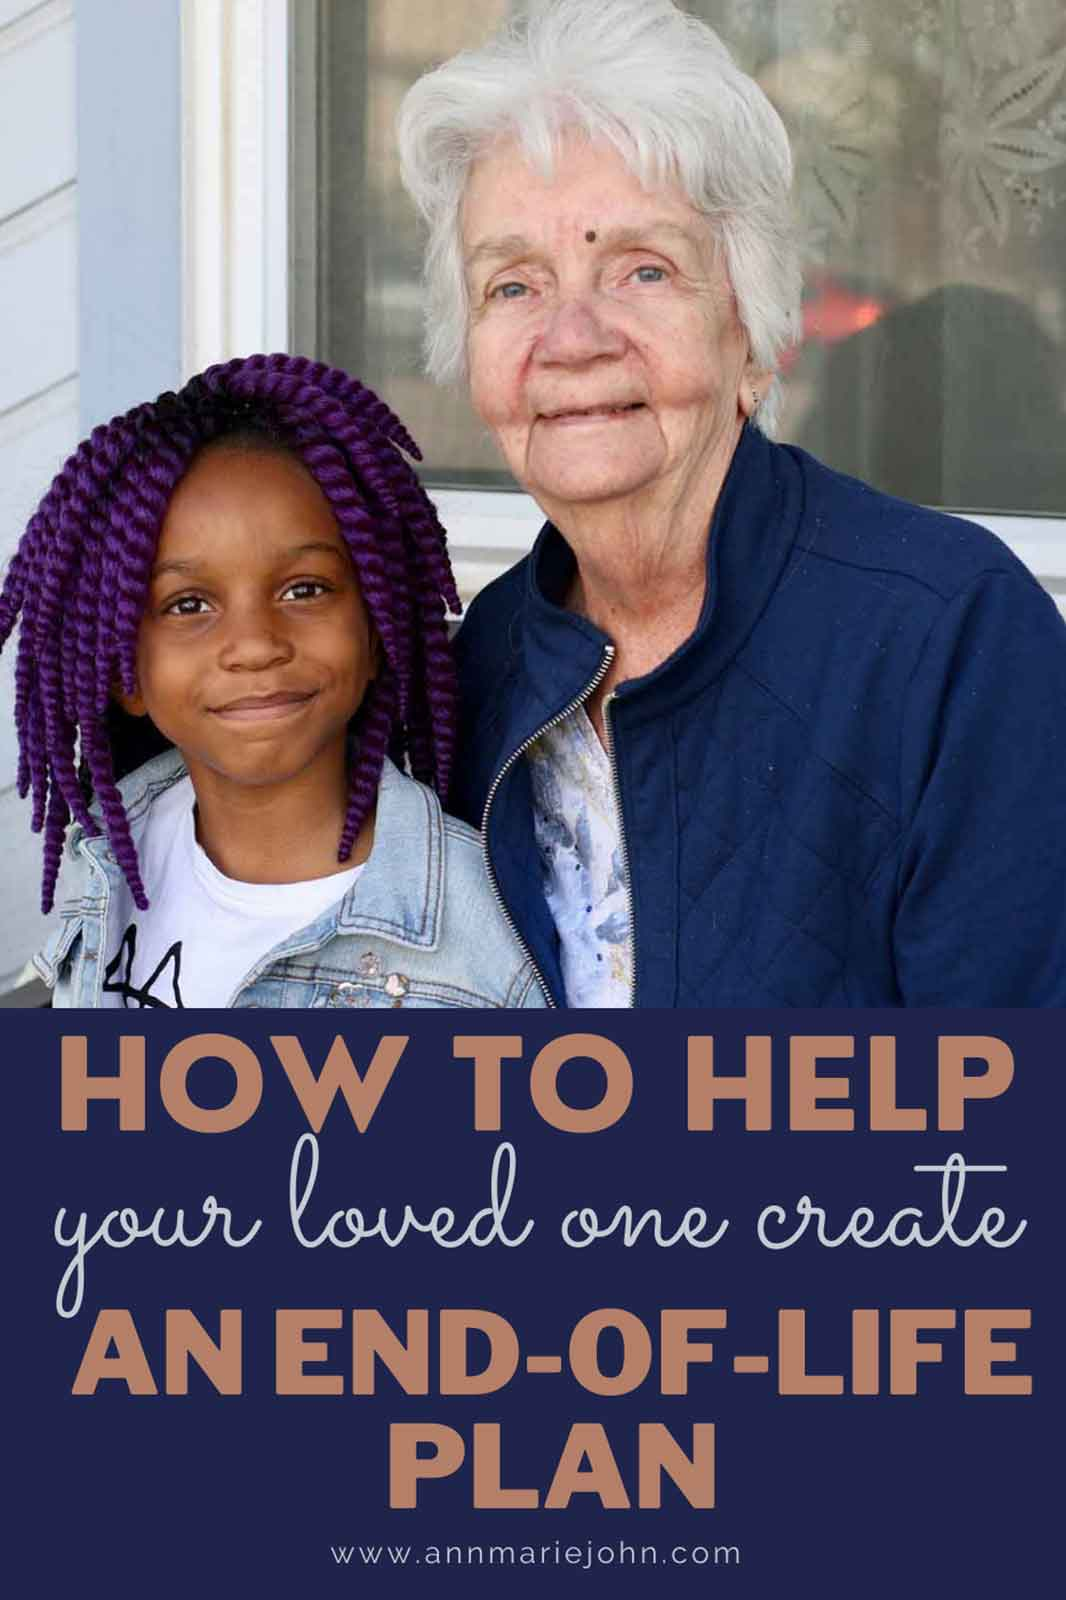 How to Help a Loved One Create an End-of-life Plan